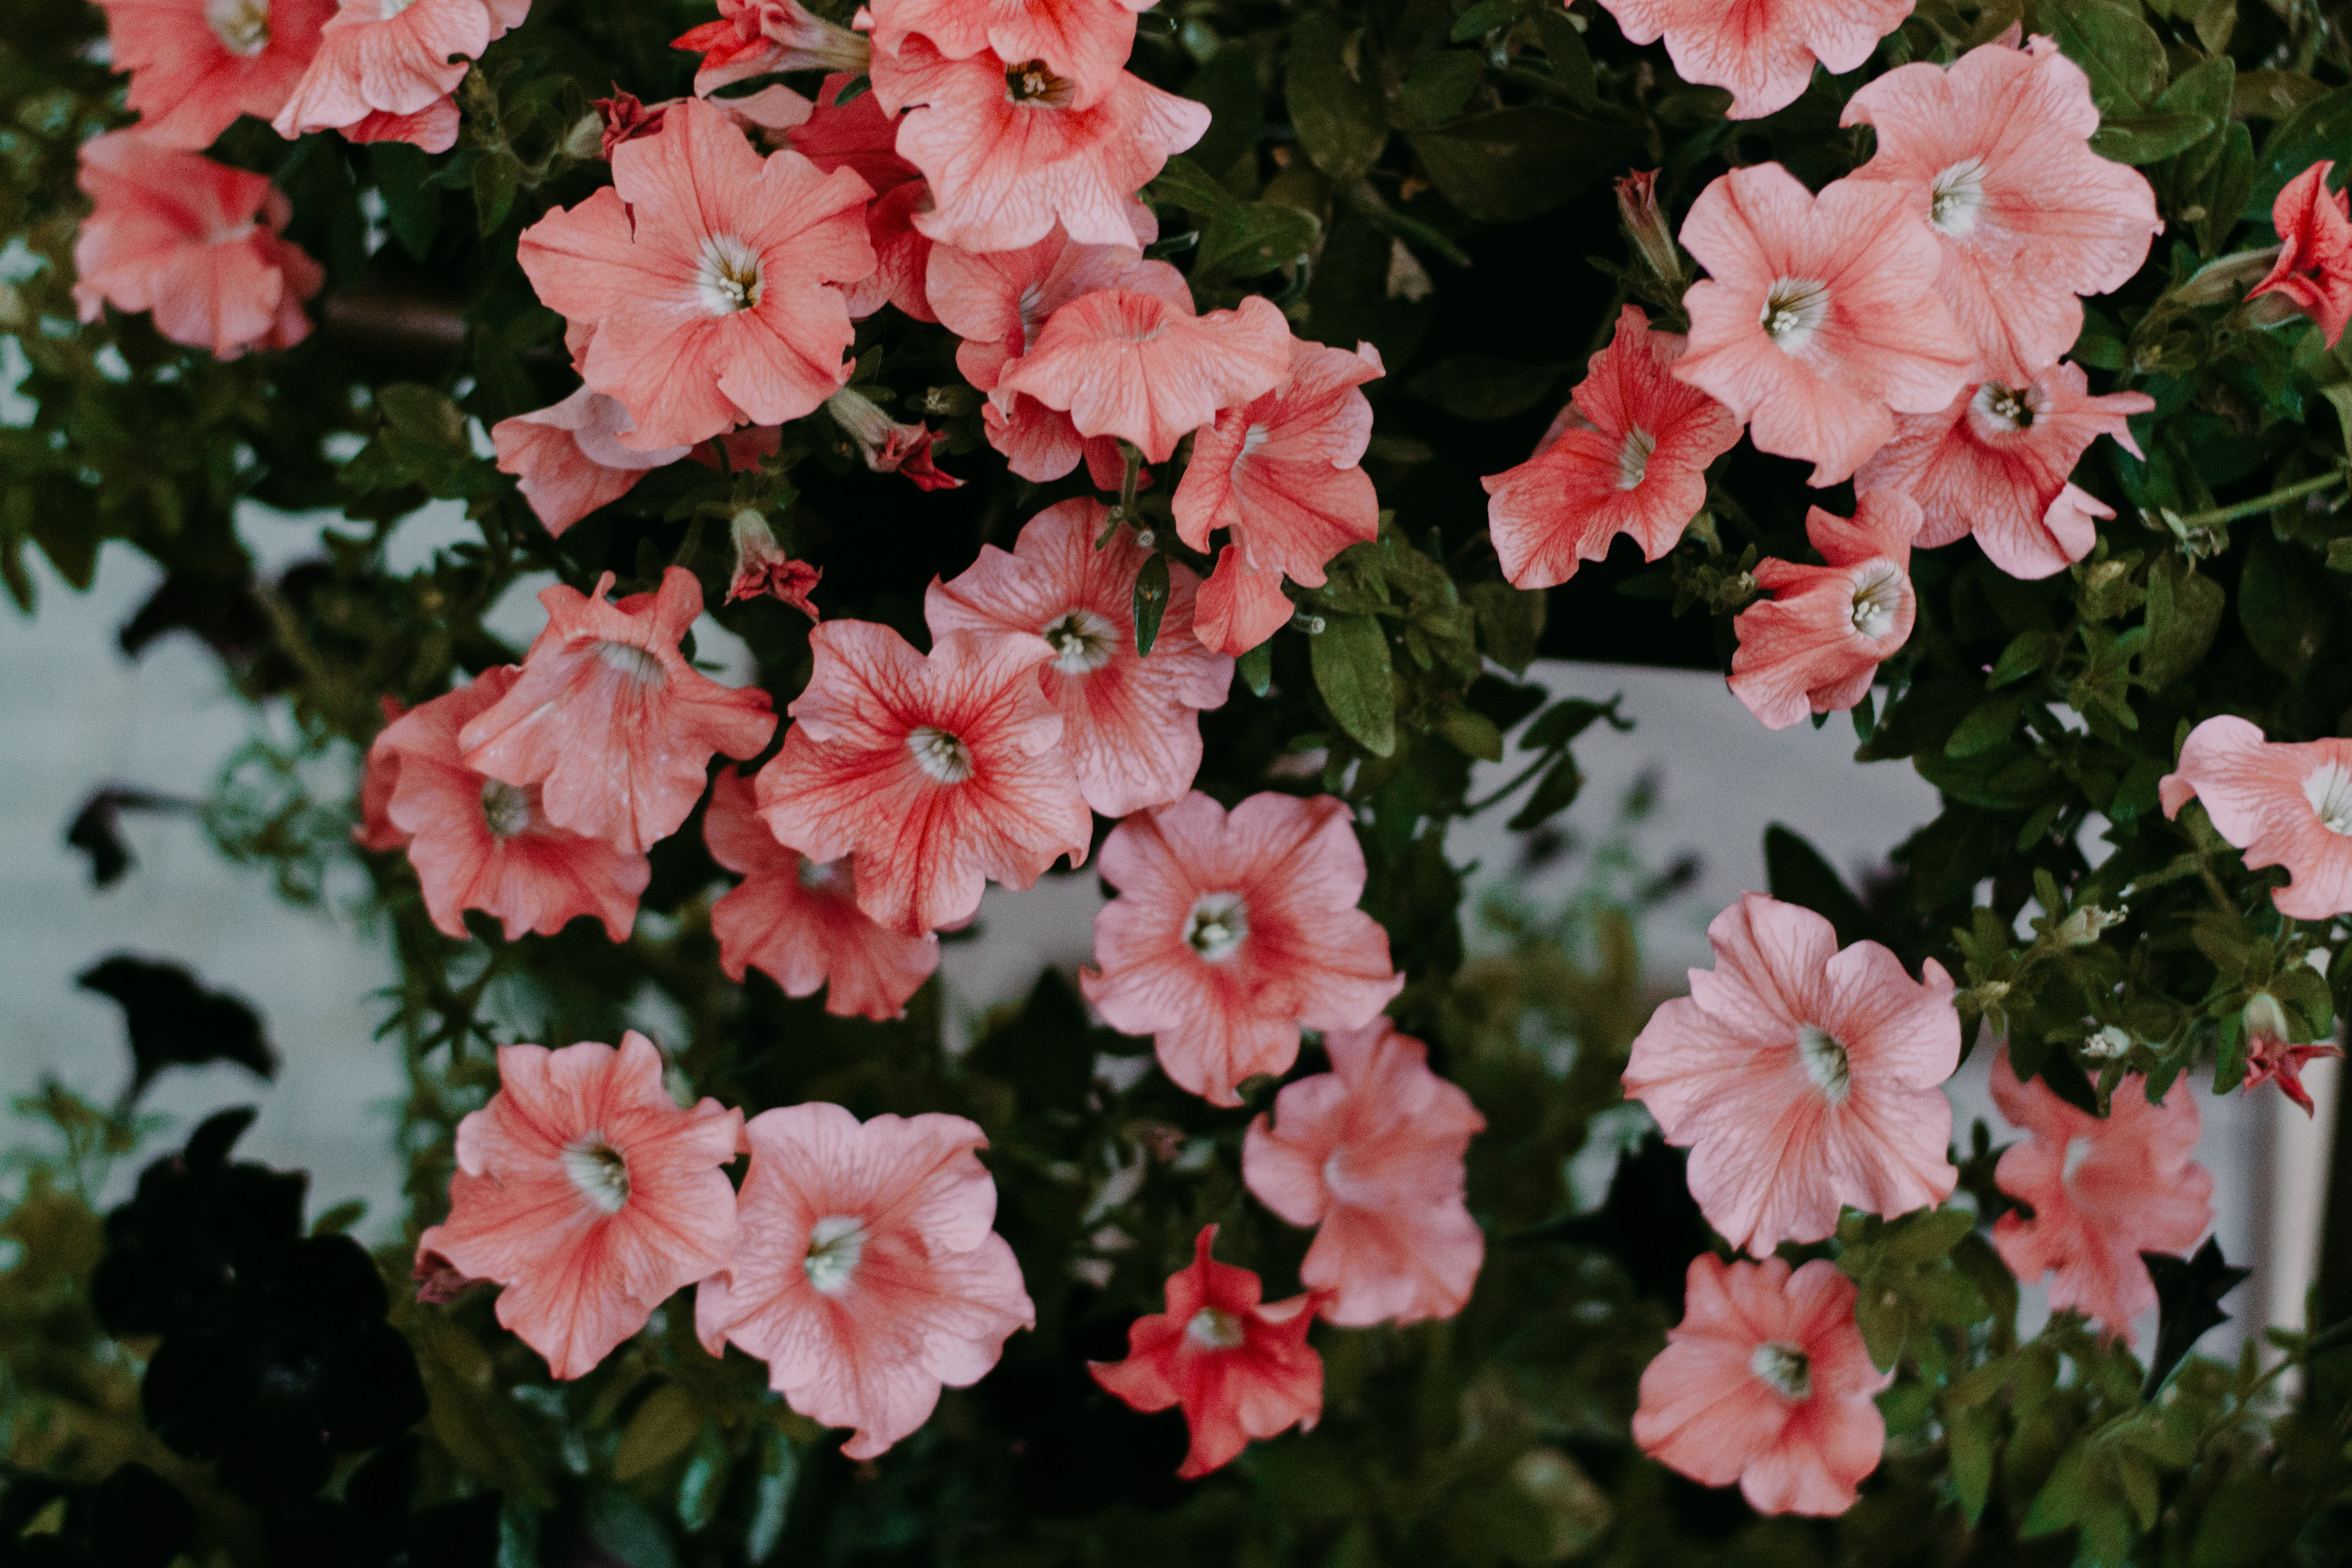 Close-up Photo of Pink Petunia Flowers